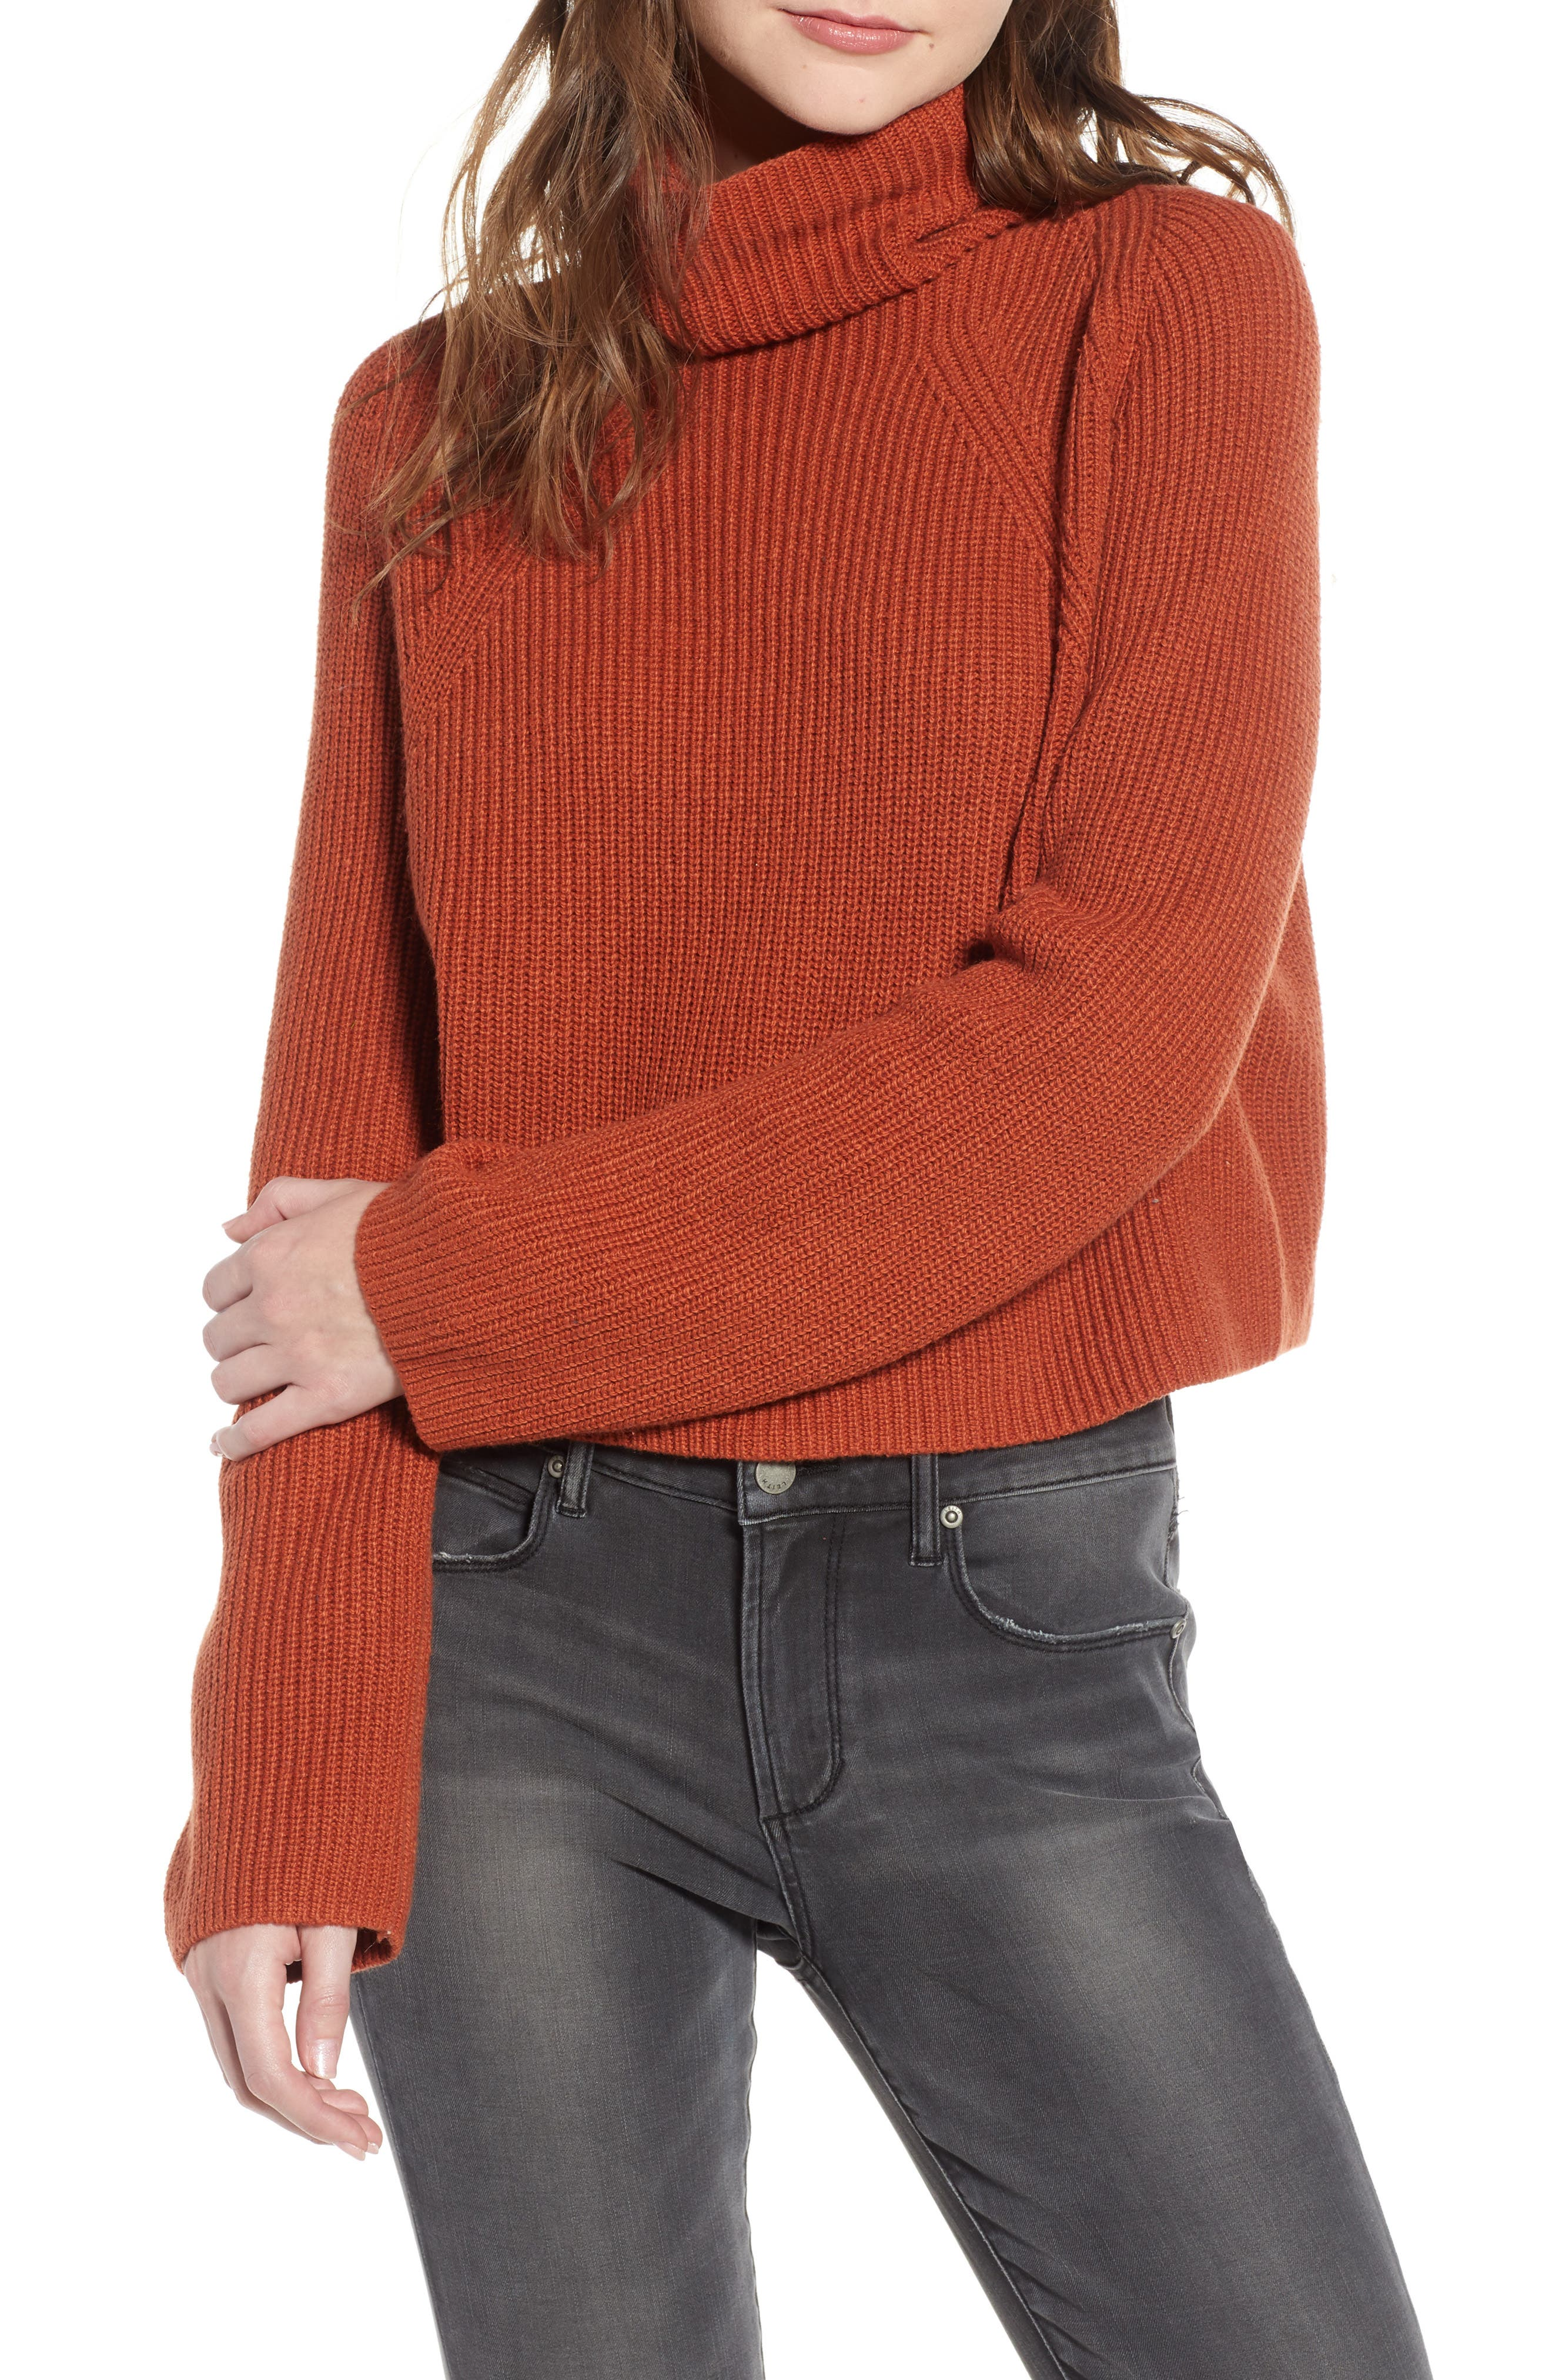 LEITH, Transfer Stitch Turtleneck Sweater, Main thumbnail 1, color, 210